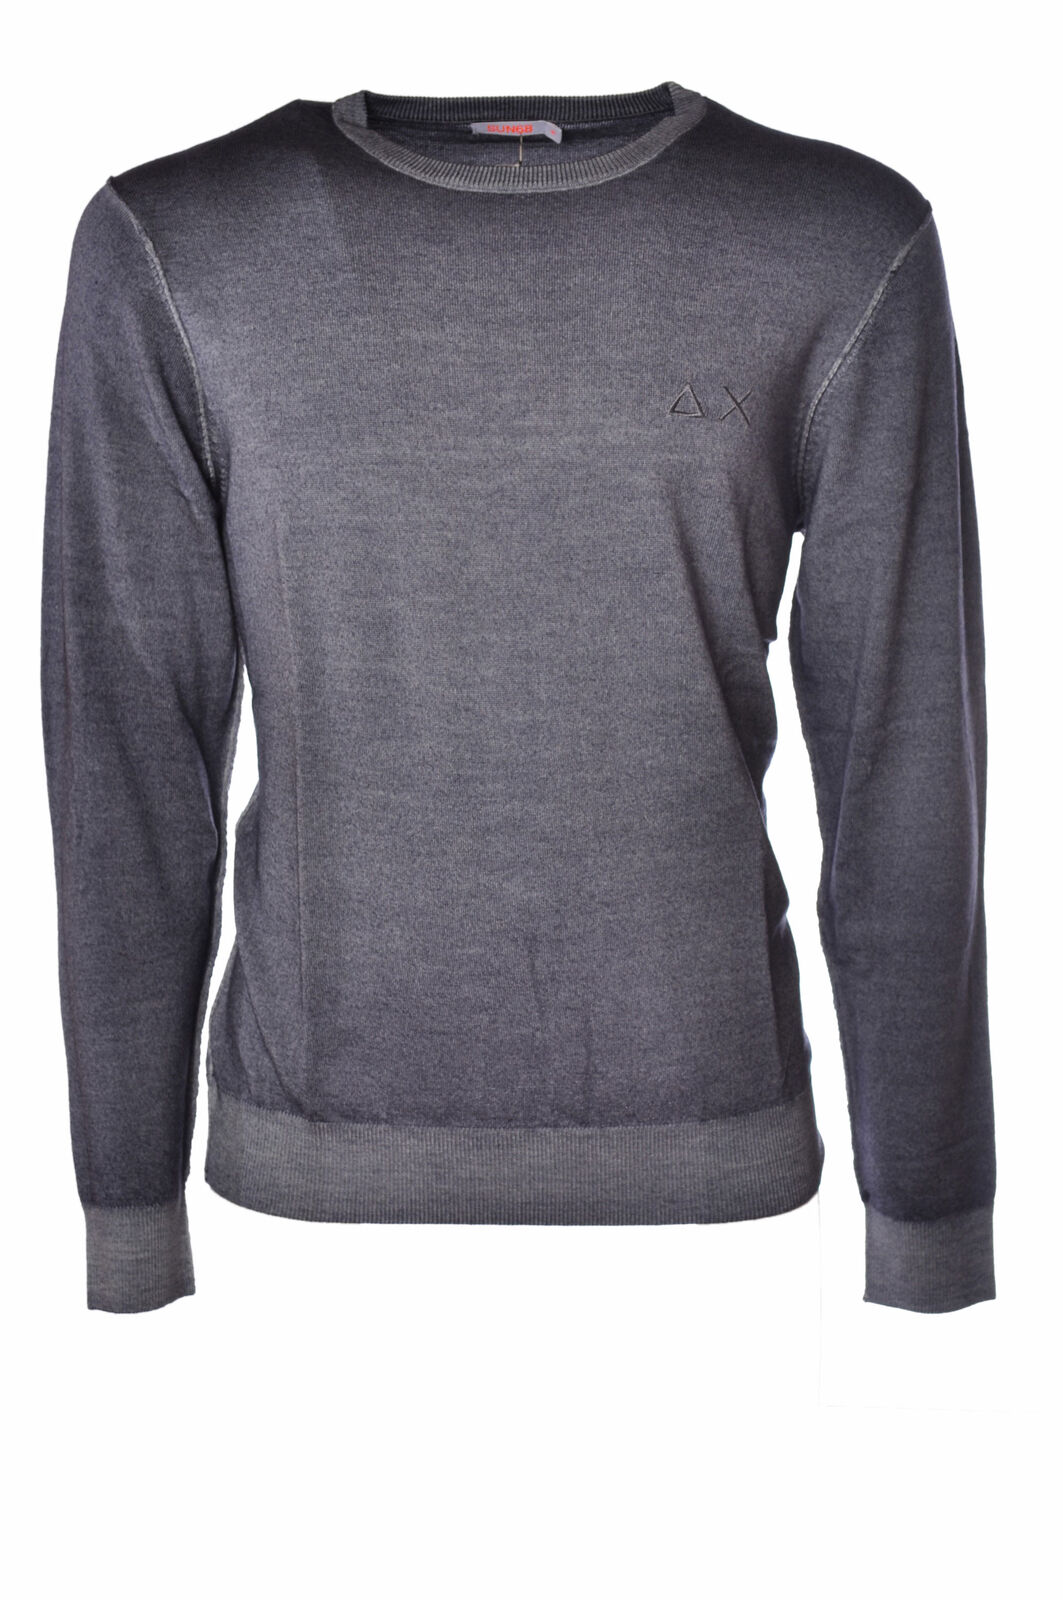 Sun 68  -  Sweaters - Male - Grau - 2514226N173357